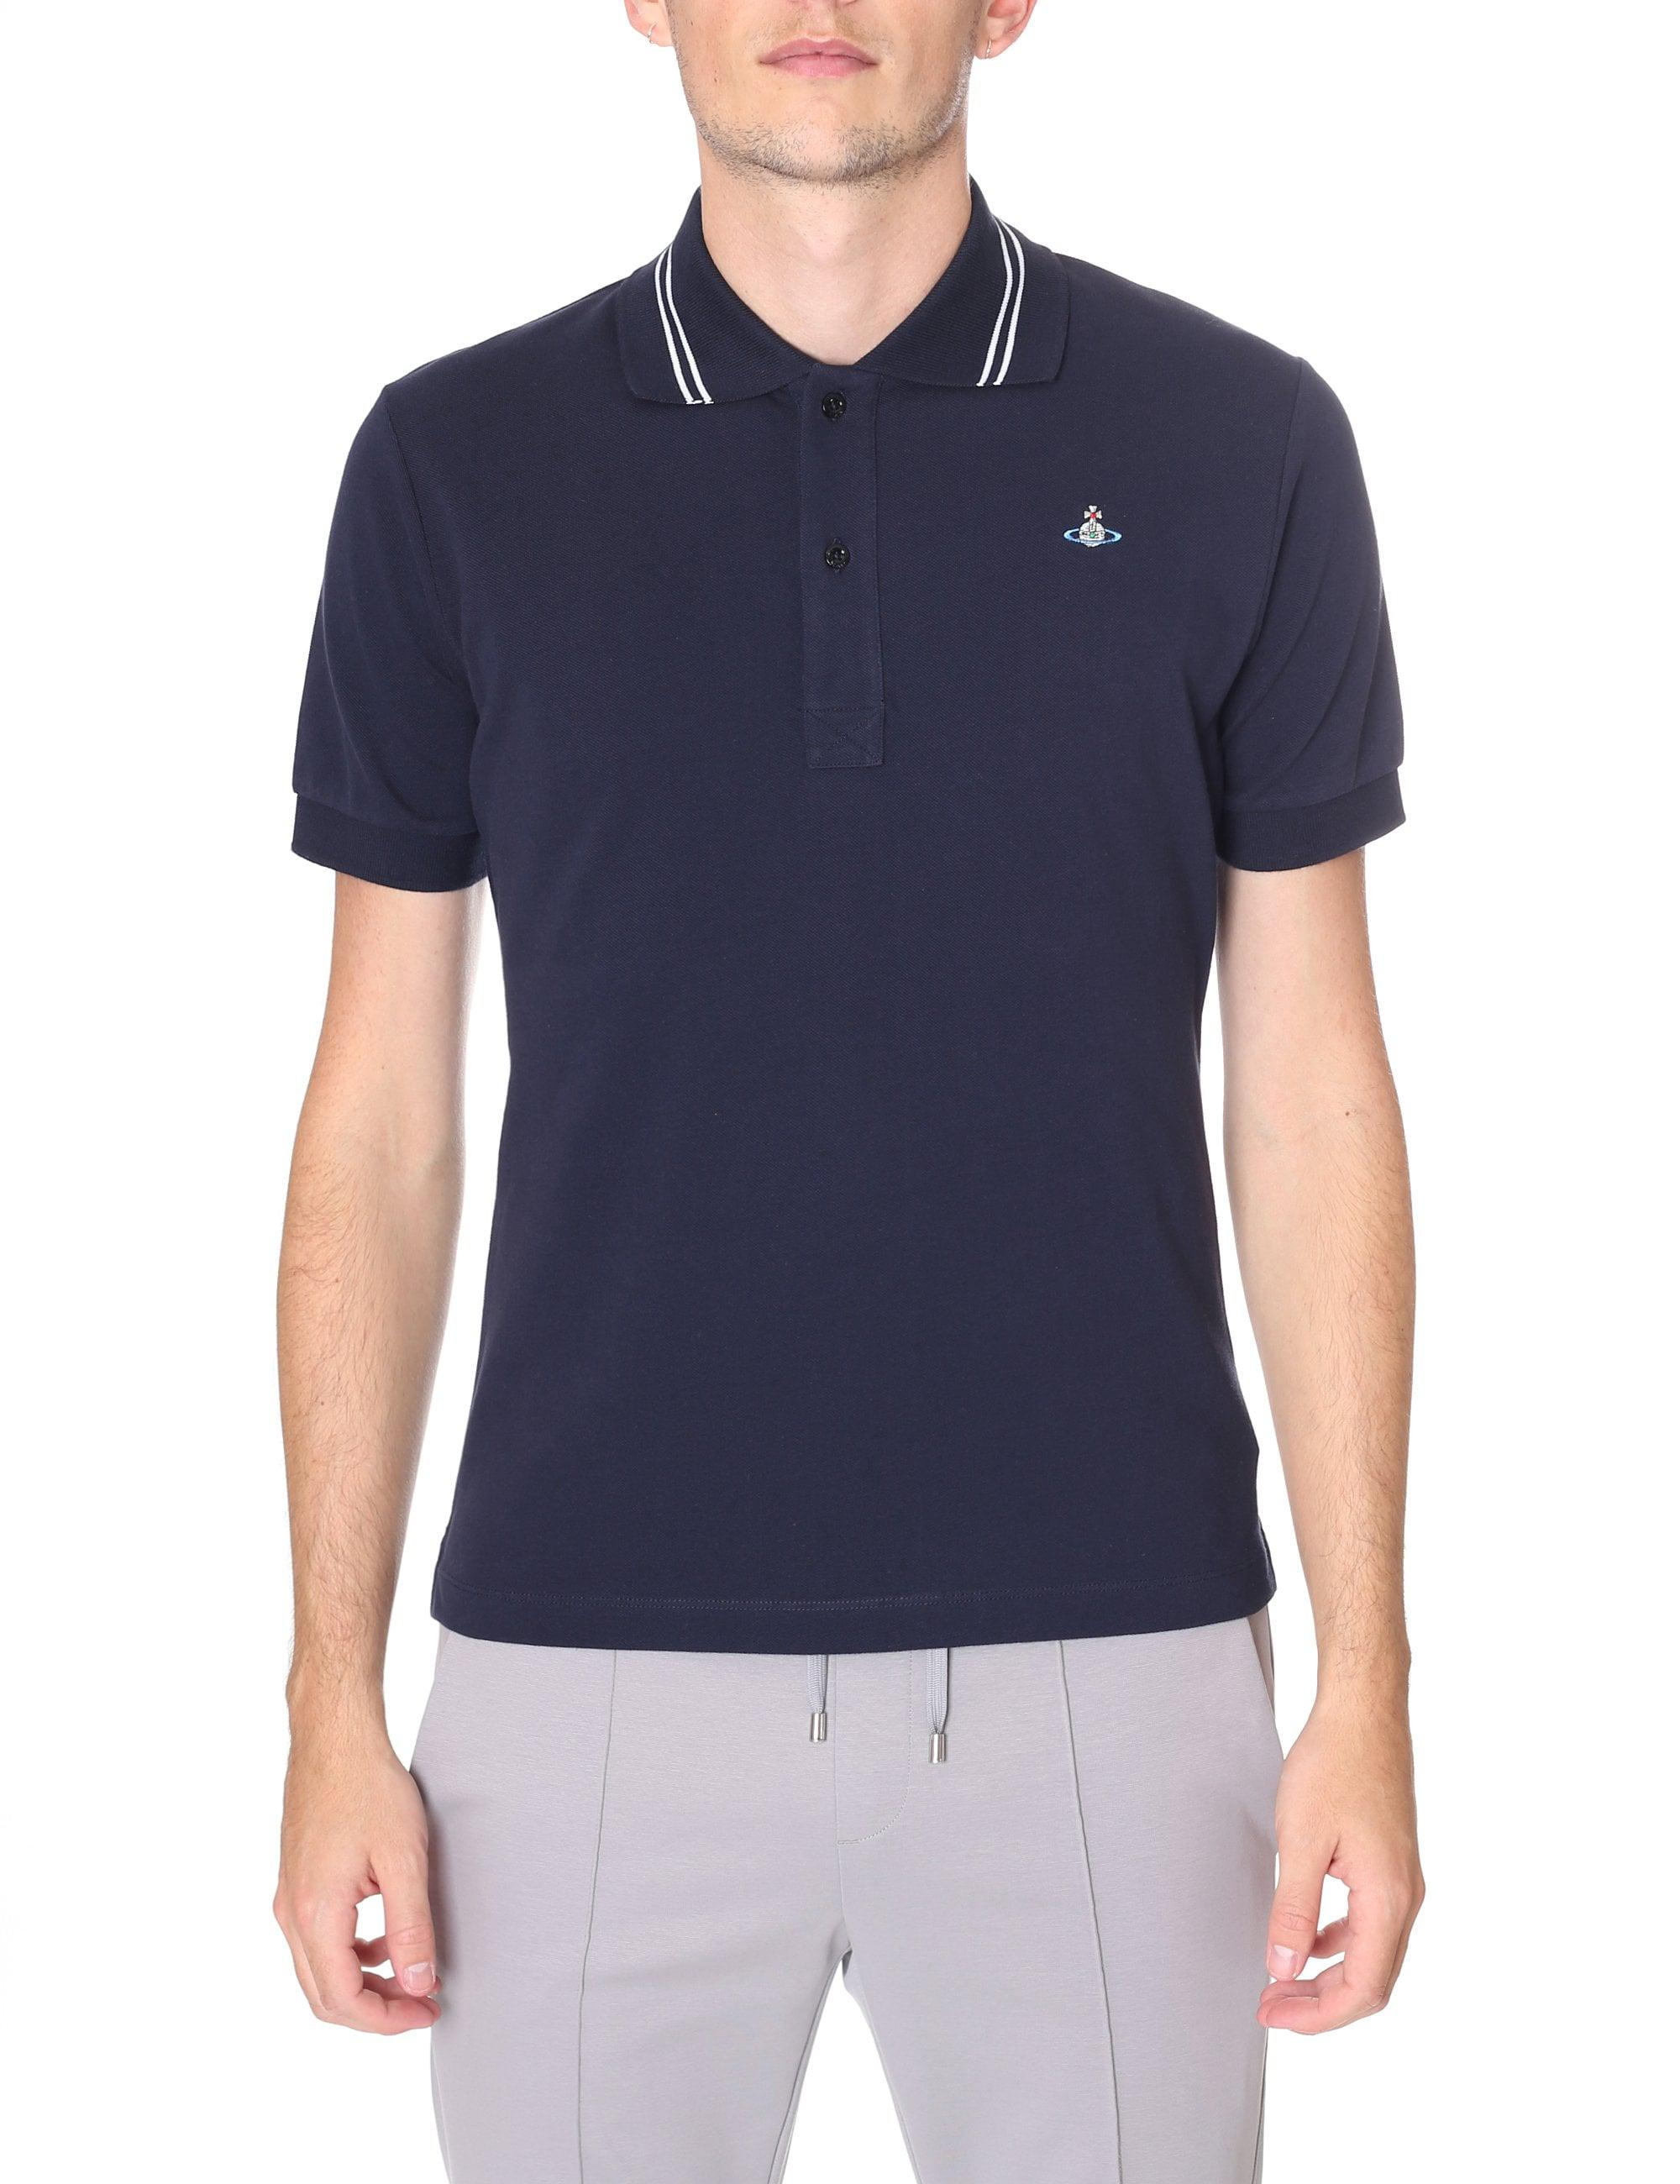 Vivienne Westwood Tipped Collar Short Sleeve Polo in Blue for Men - Lyst 8d159174b